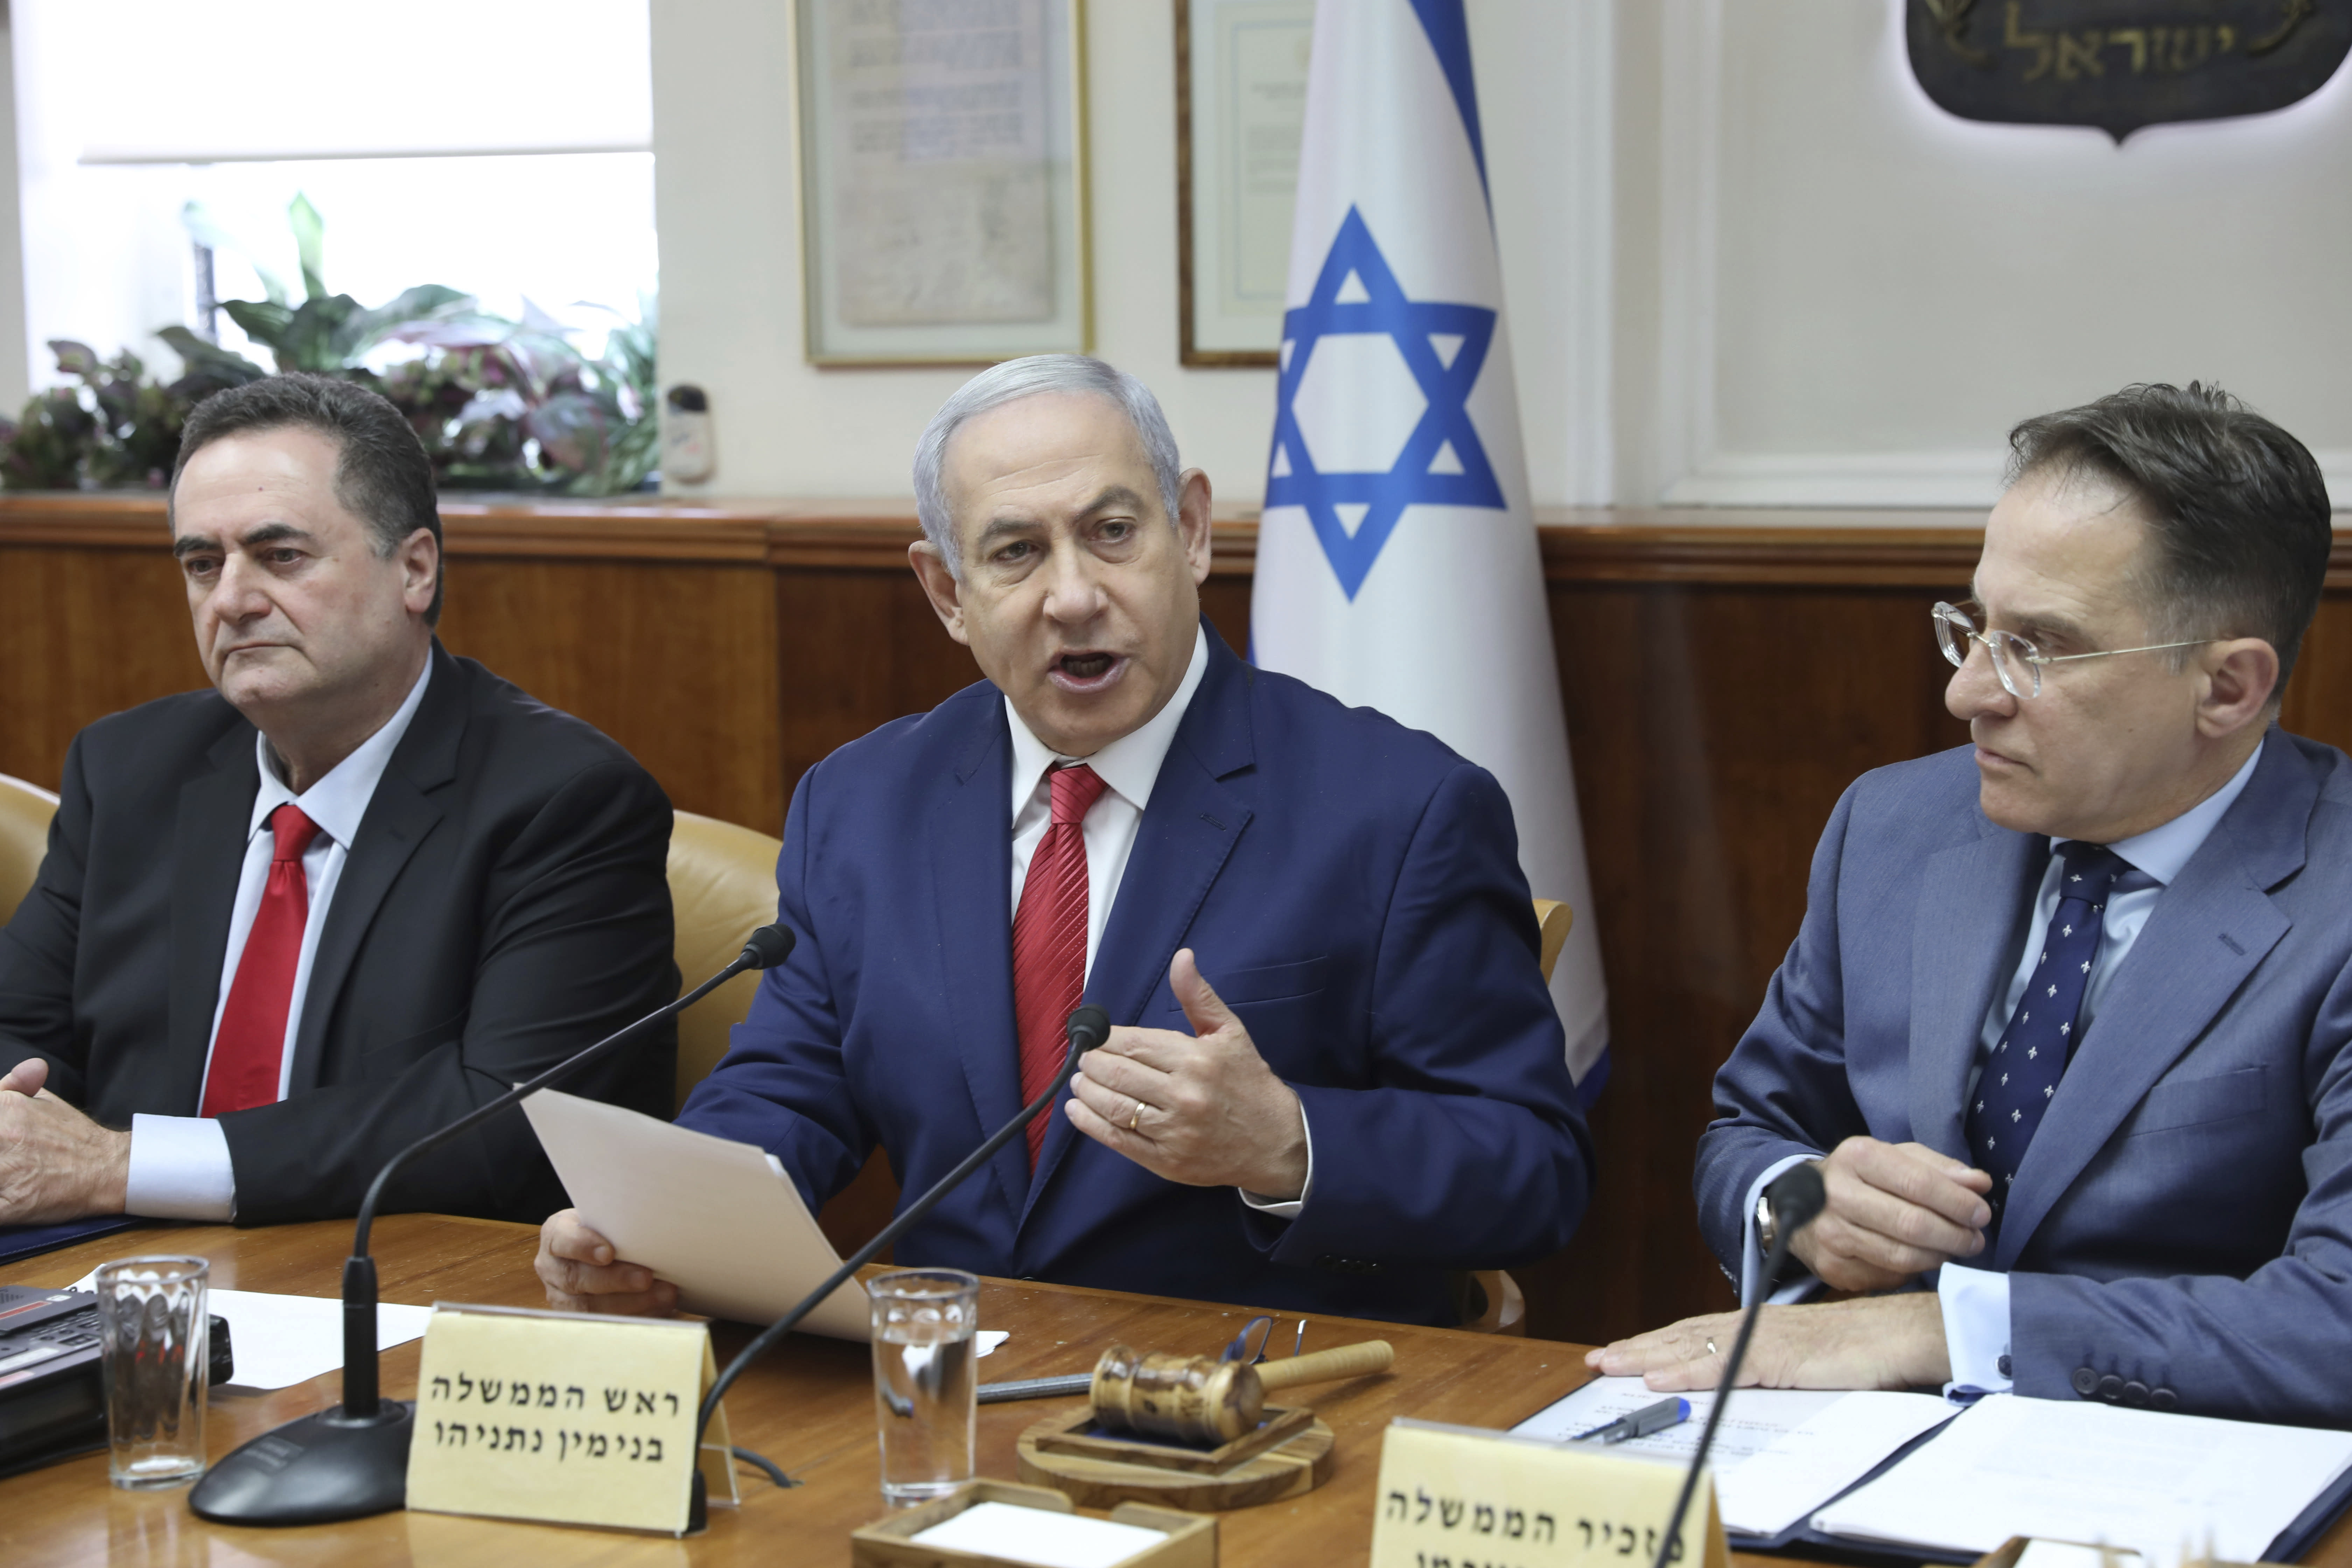 Israeli PM's bid to place cameras at polling stations fails